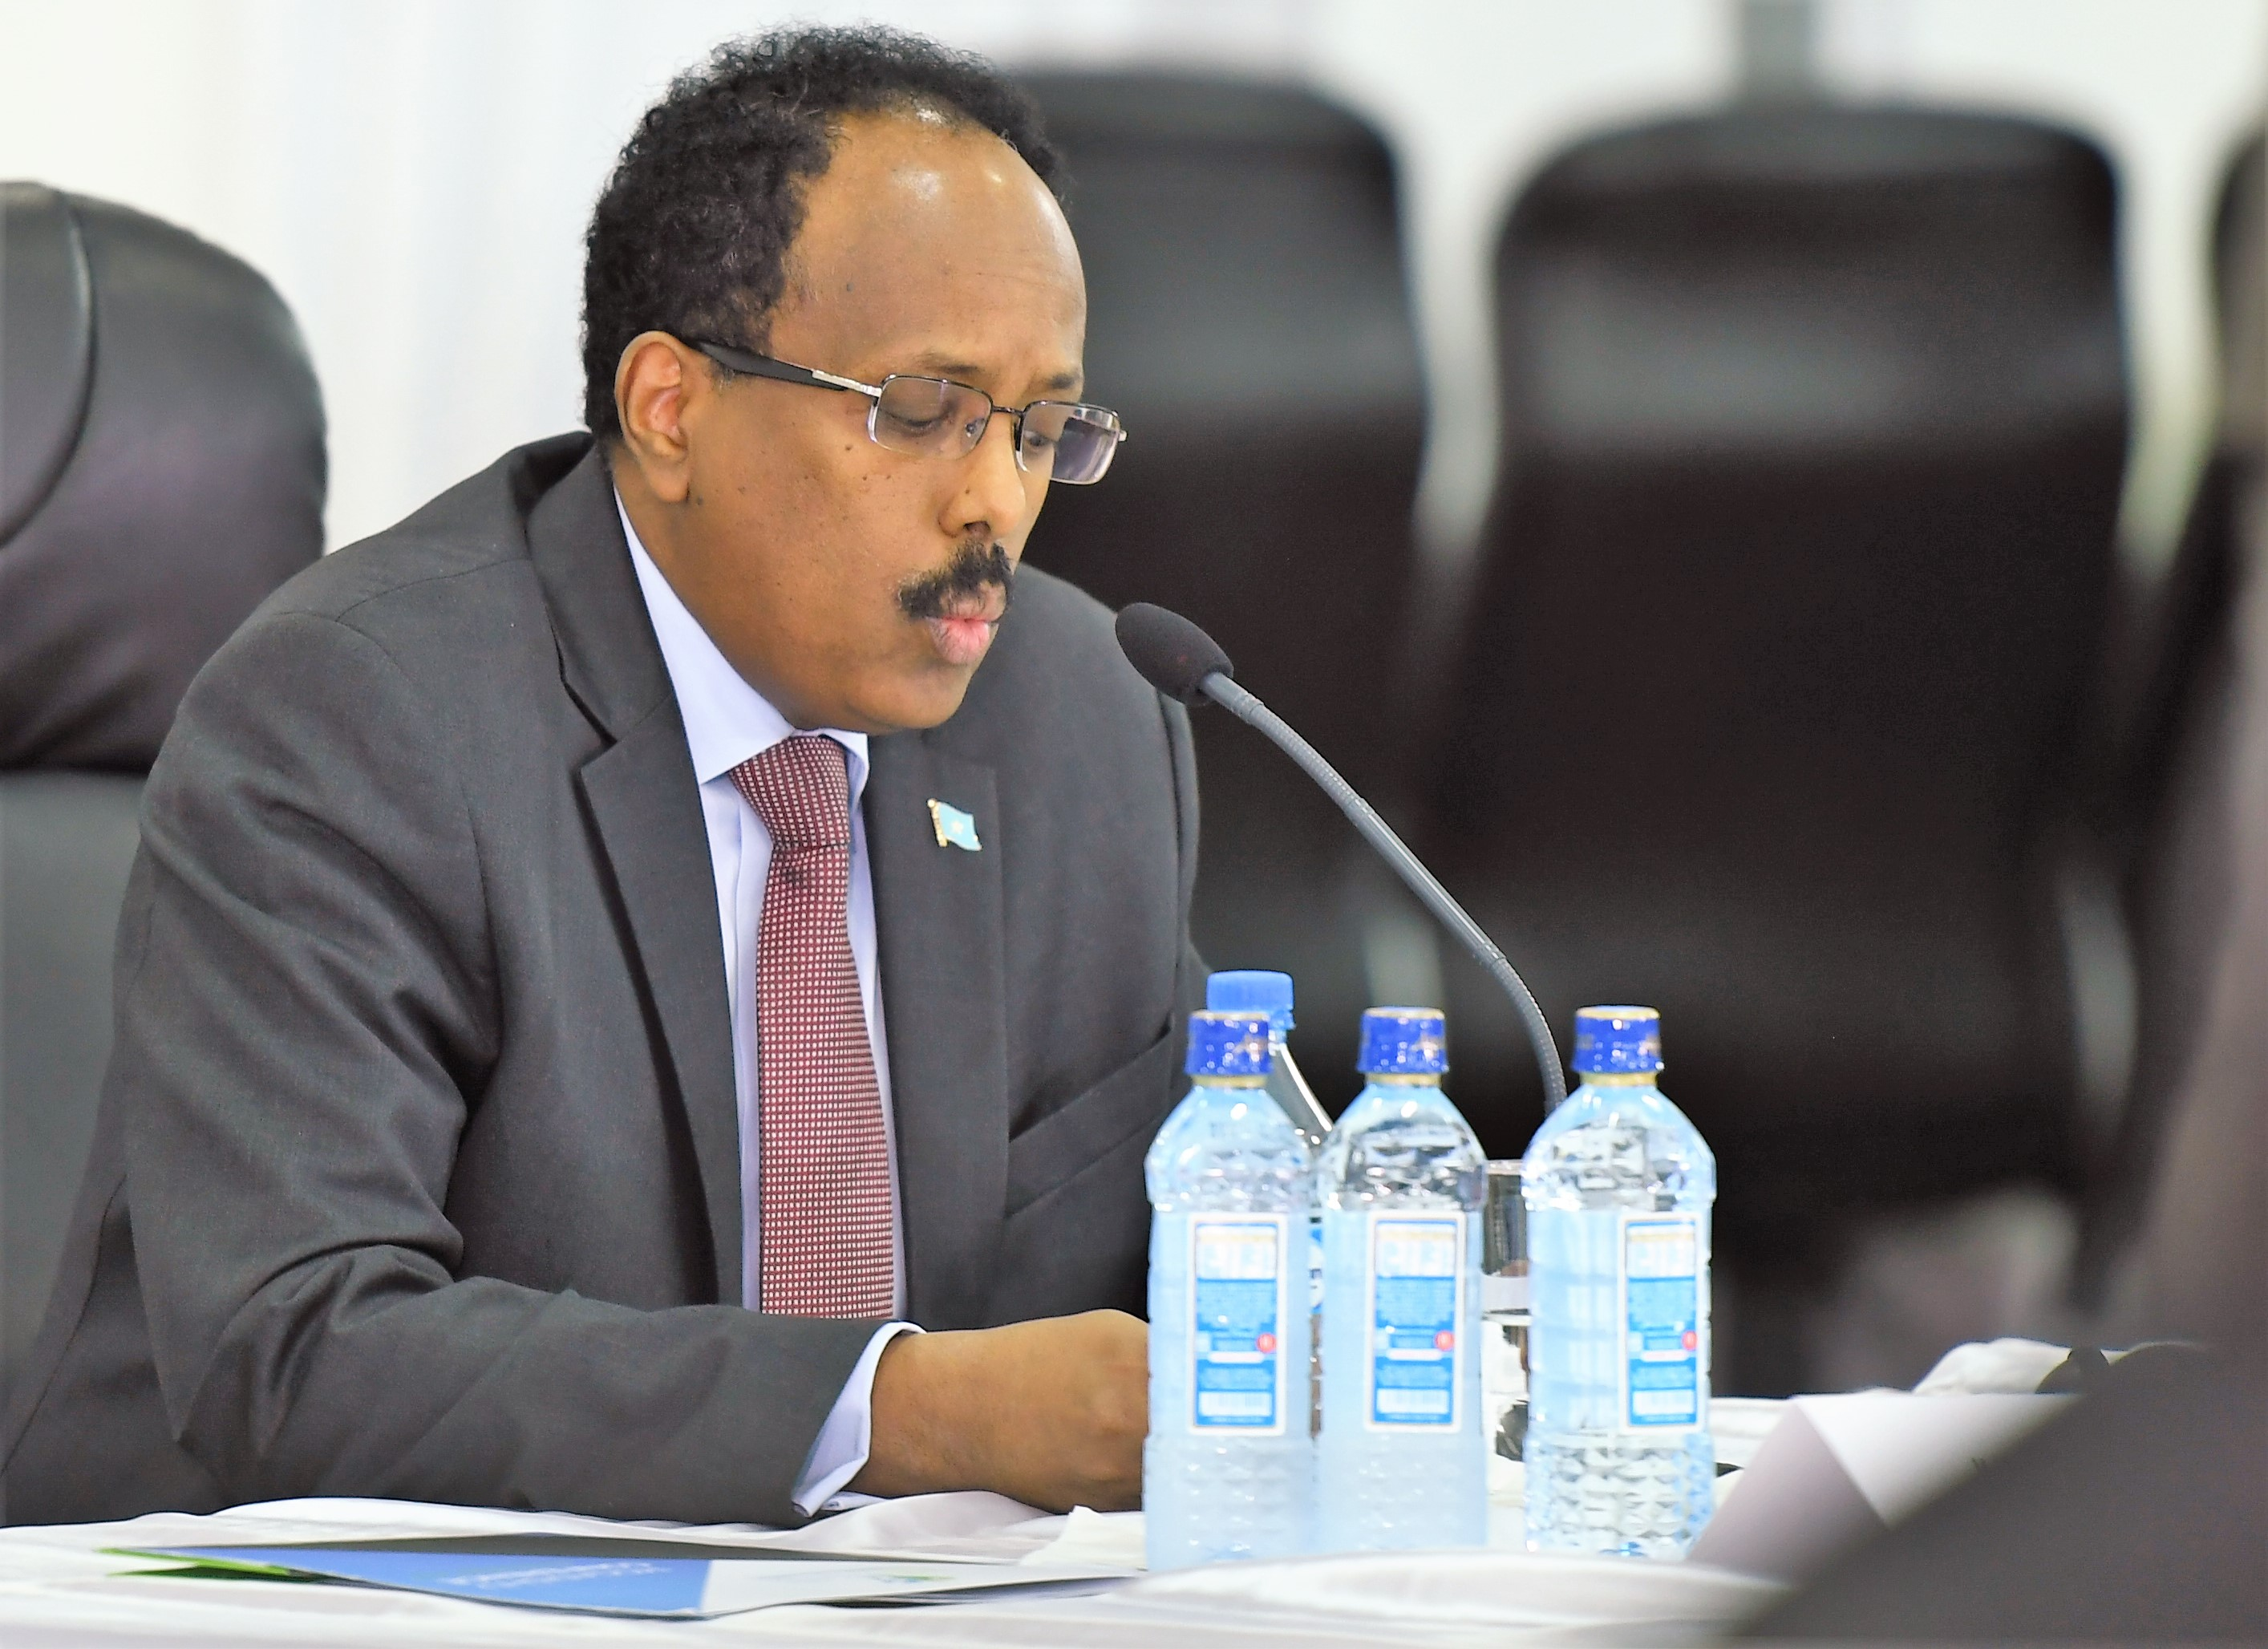 Mohamed Abdullahi Mohamed Farmaajo, the President of the Federal Government of Somalia, addresses participants during Somalia Security Conference held in Mogadishu, Somalia, on December 4, 2017. (UN Photo by Omar Abdisalan)